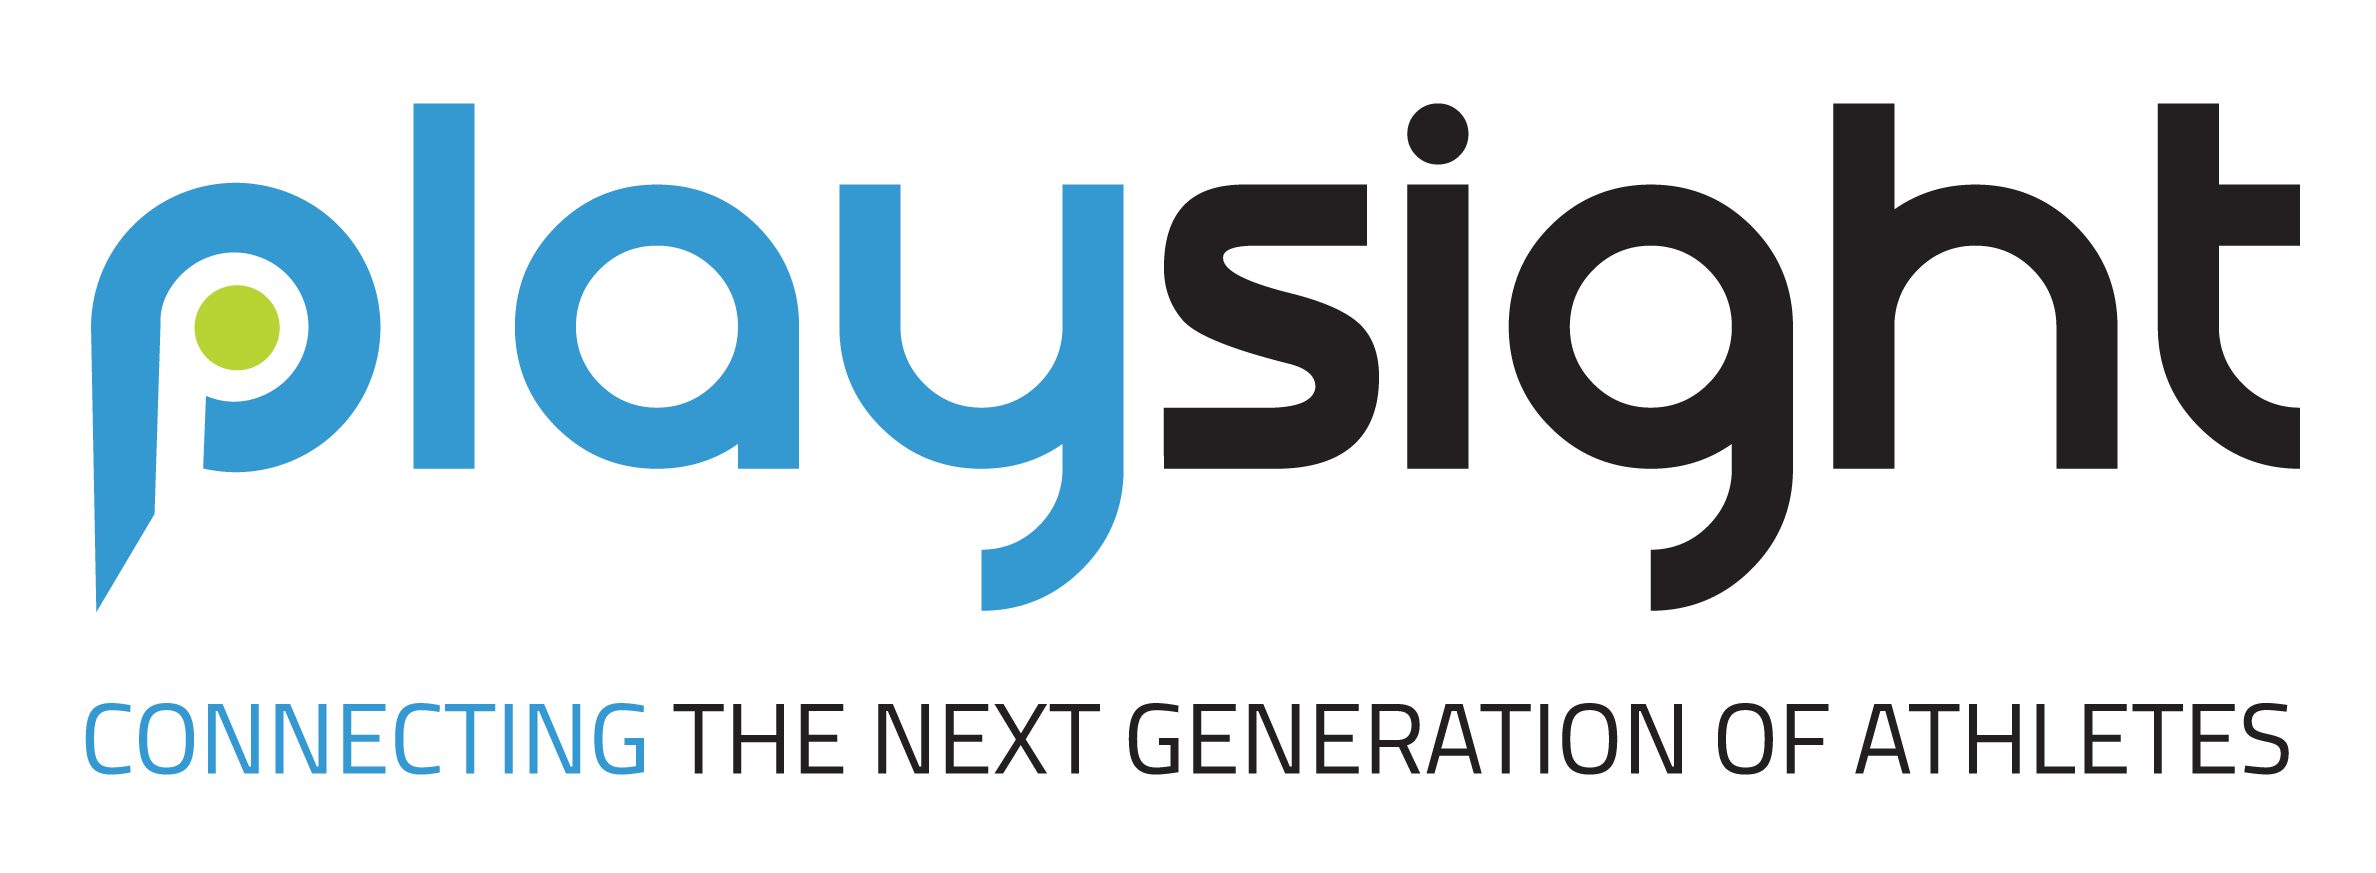 PlaySight - logo and tagline.png